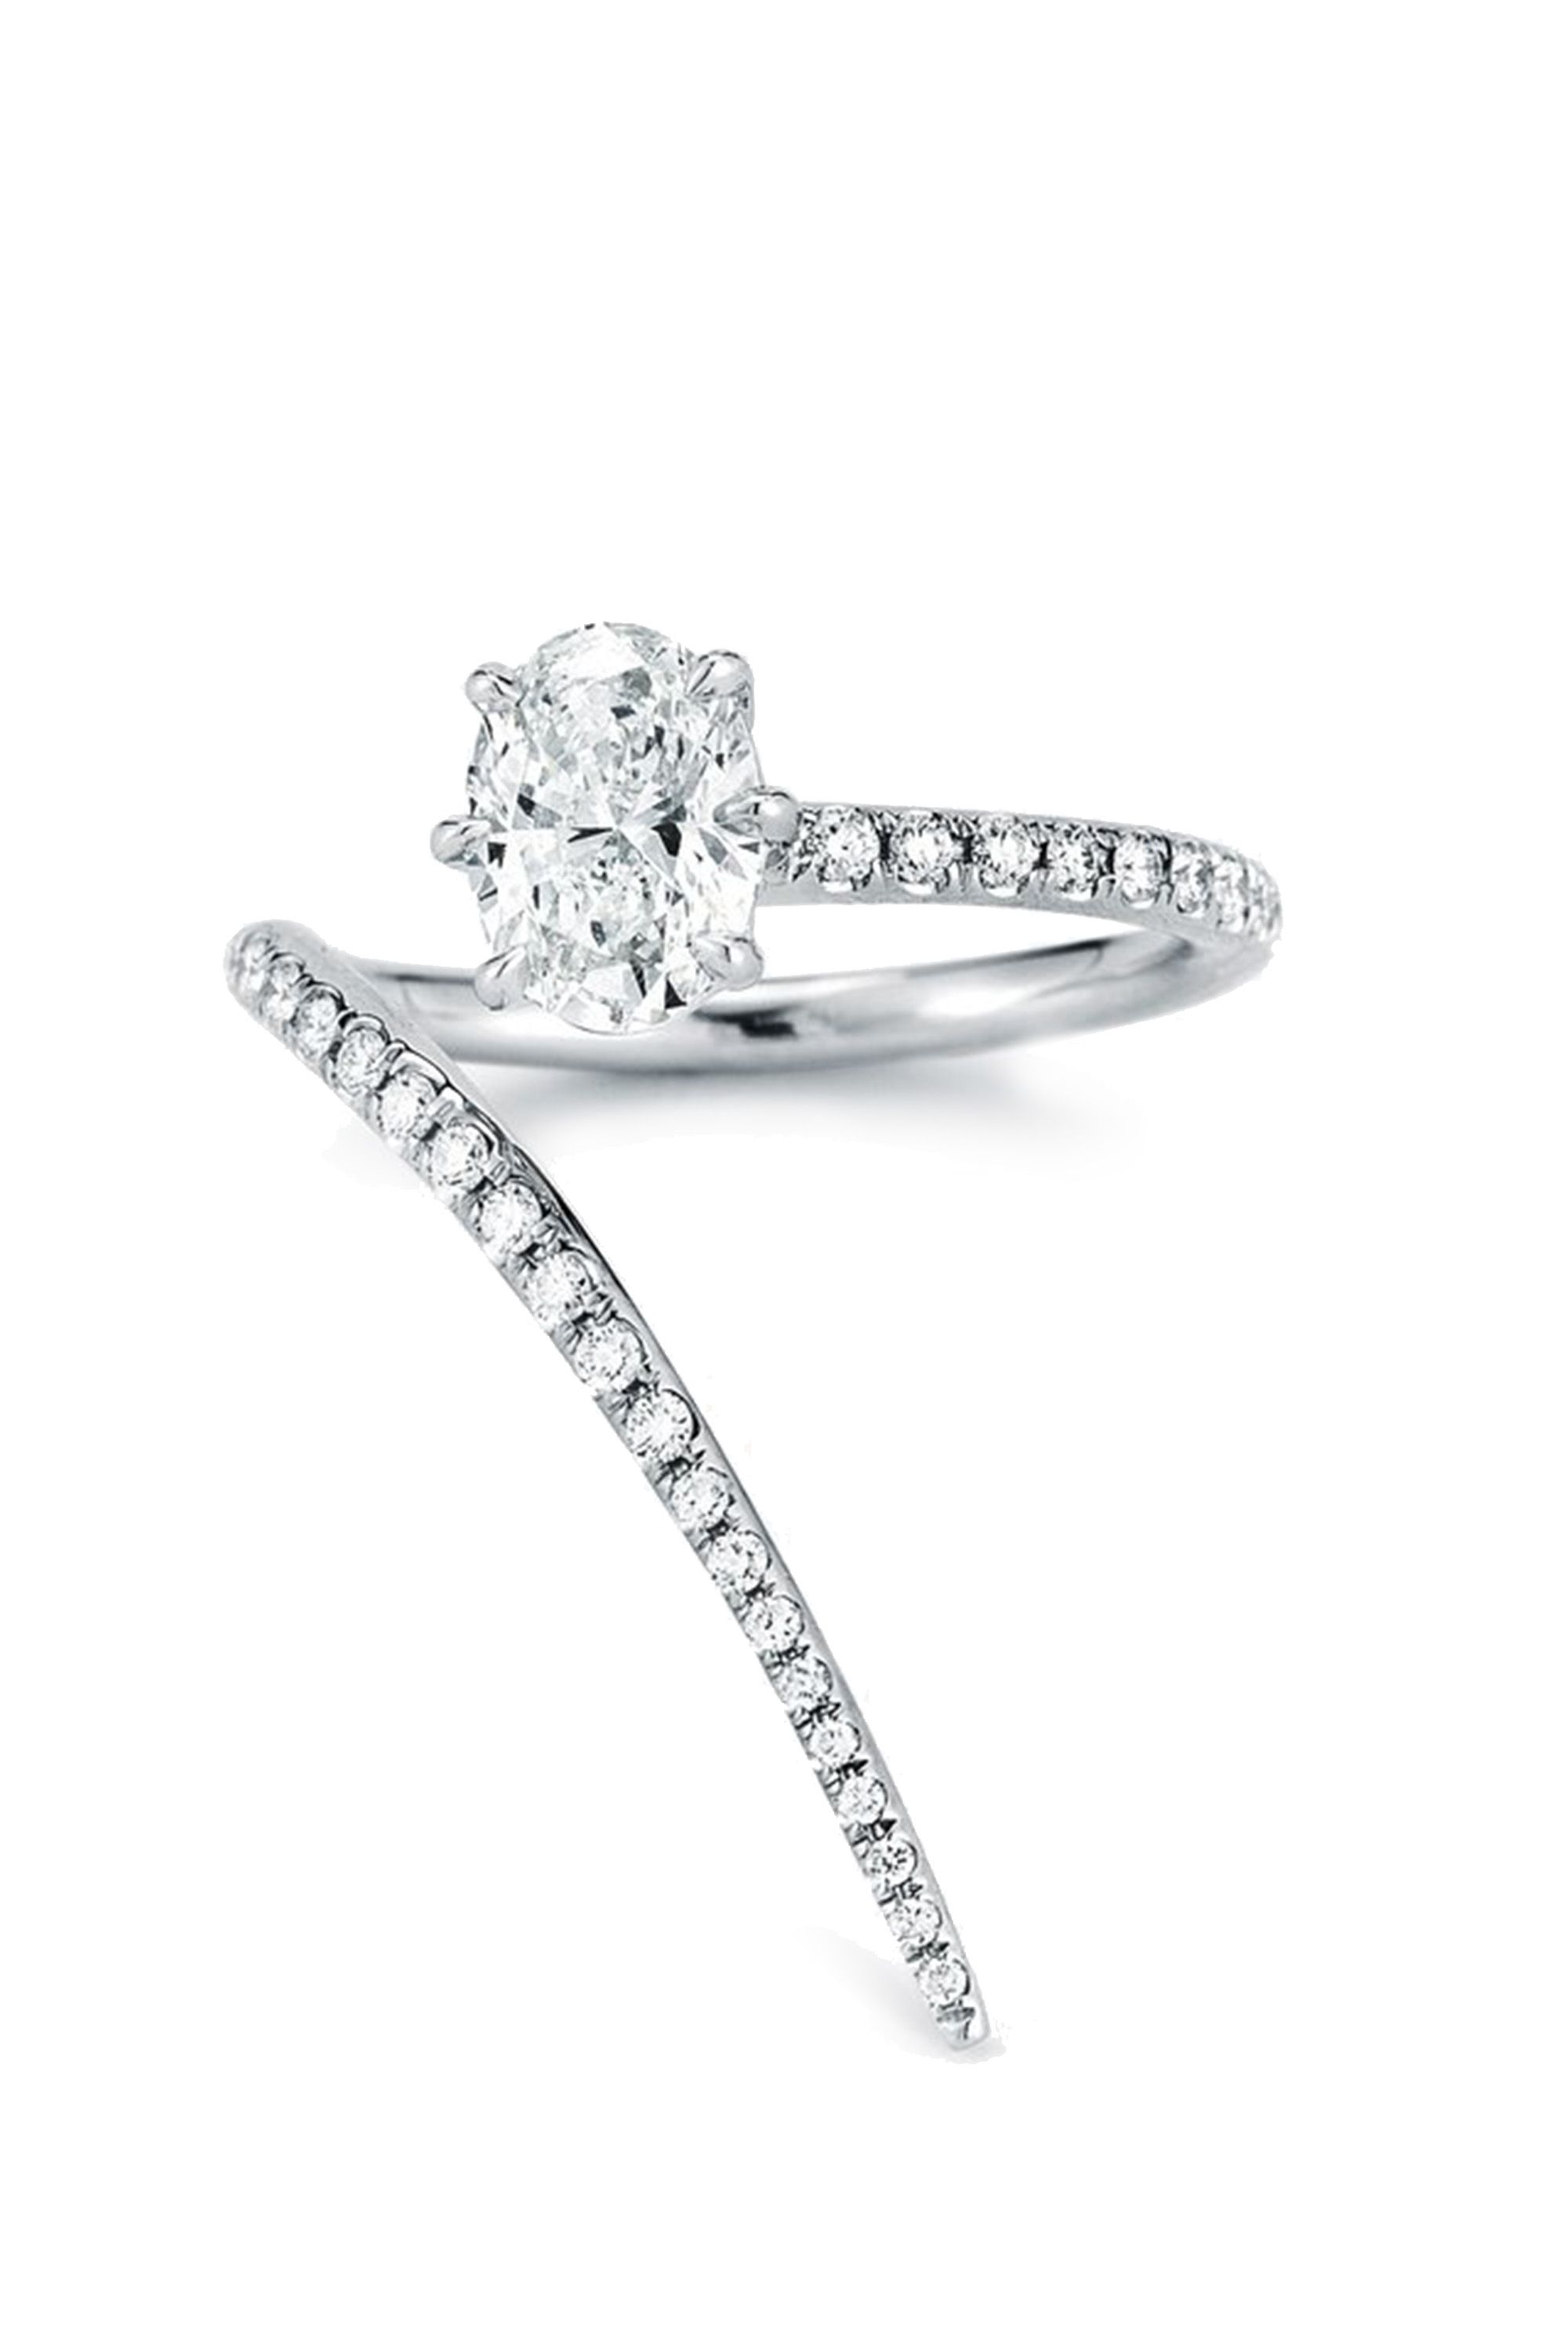 wedding attachment viewing rings ring of solitare diamond no gallery alternative photo regarding